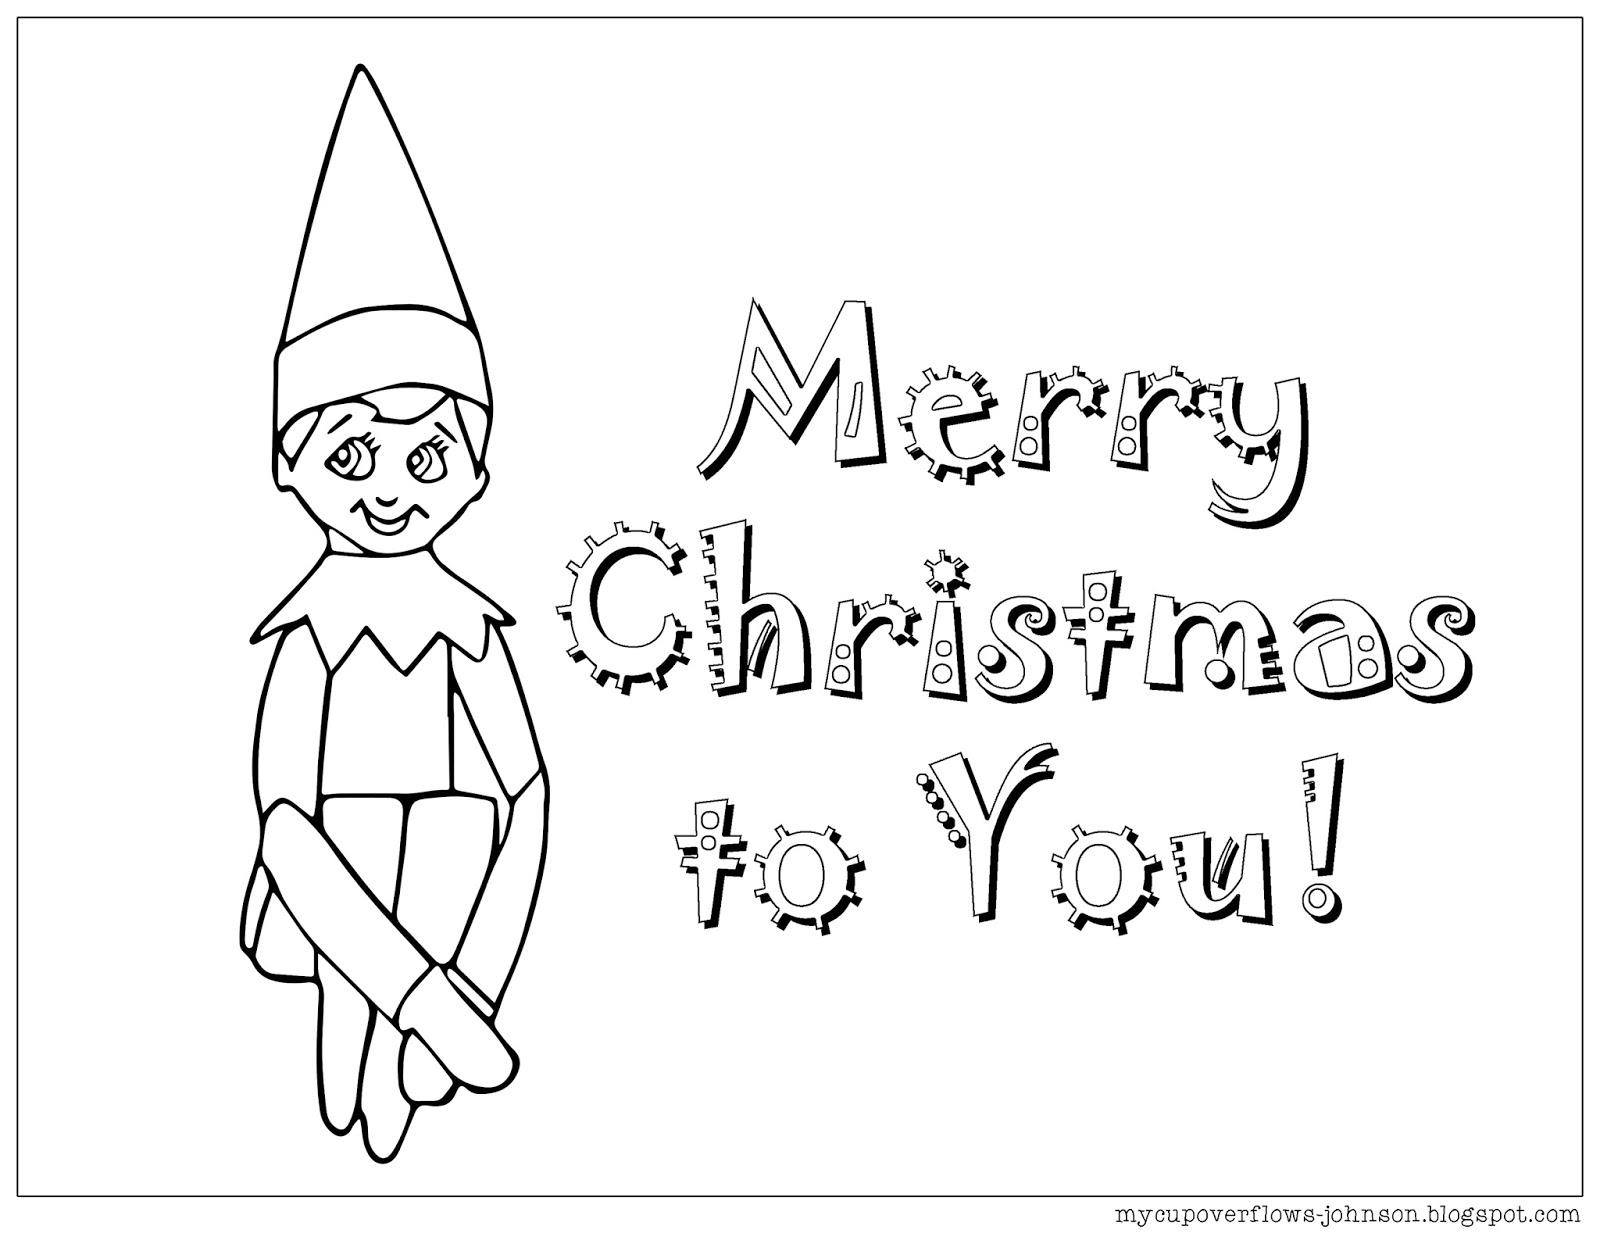 elf on the shelf coloring page free printable elf coloring pages for kids cool2bkids coloring page elf the on shelf